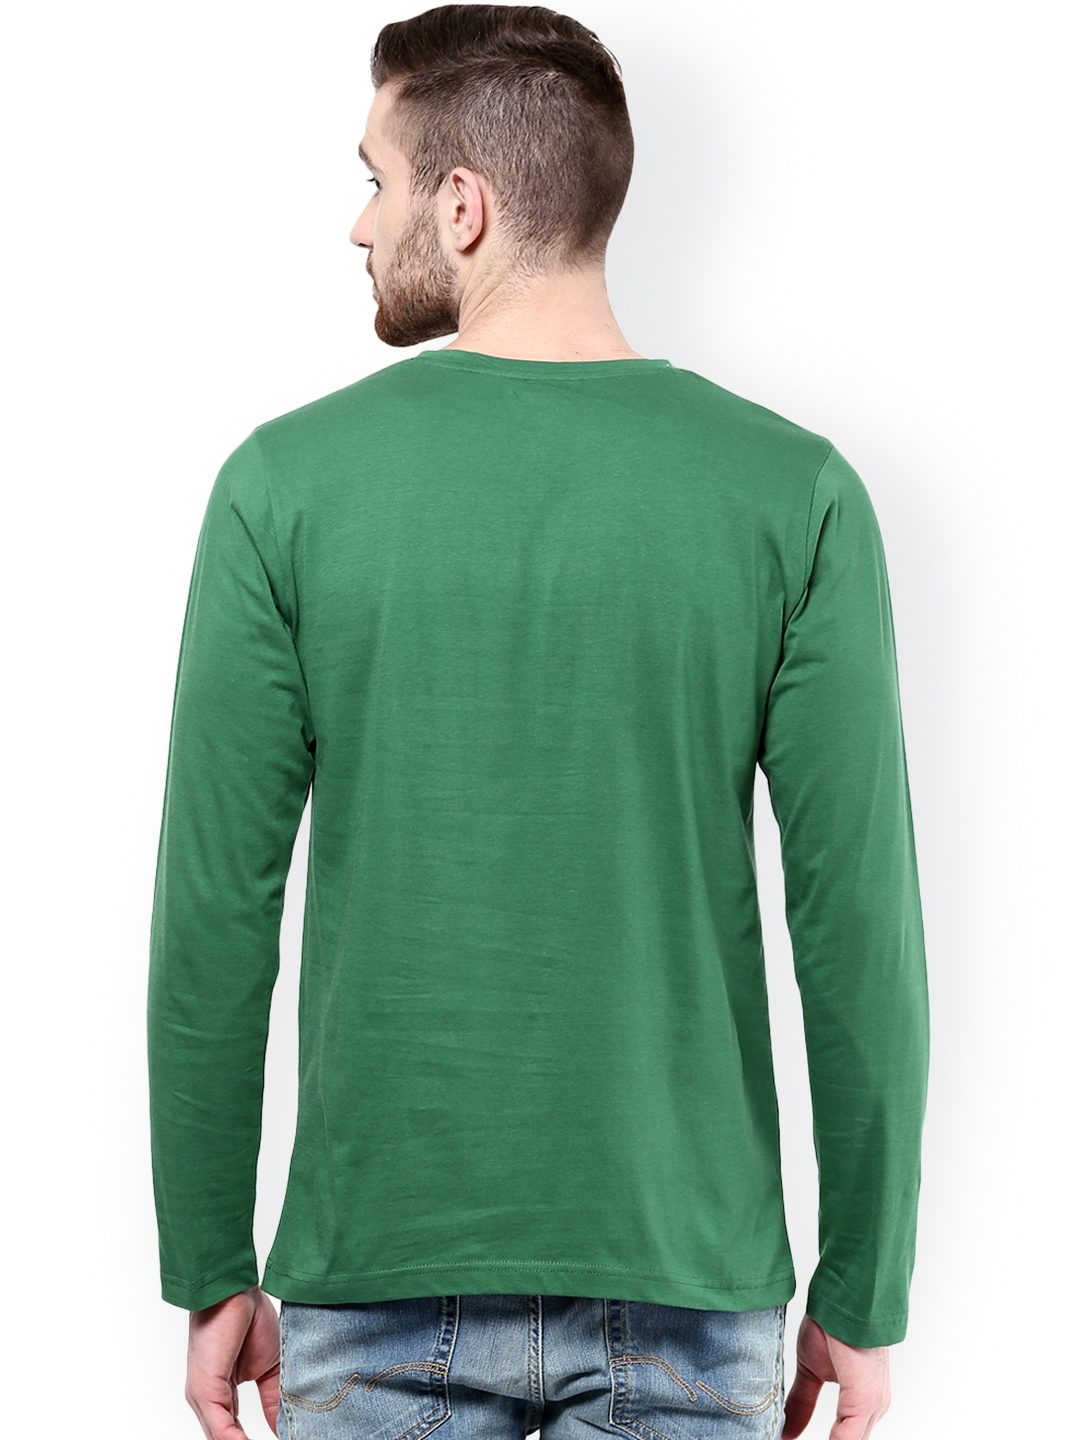 Henley neck T-shirts got its distinctive name because this style of shirt was the traditional uniform of rowers in the English town of Henley-on-Thames. Nowadays they are worn by many people such as college students, professionals, athletes, musicians, actors and fashion conscious people.